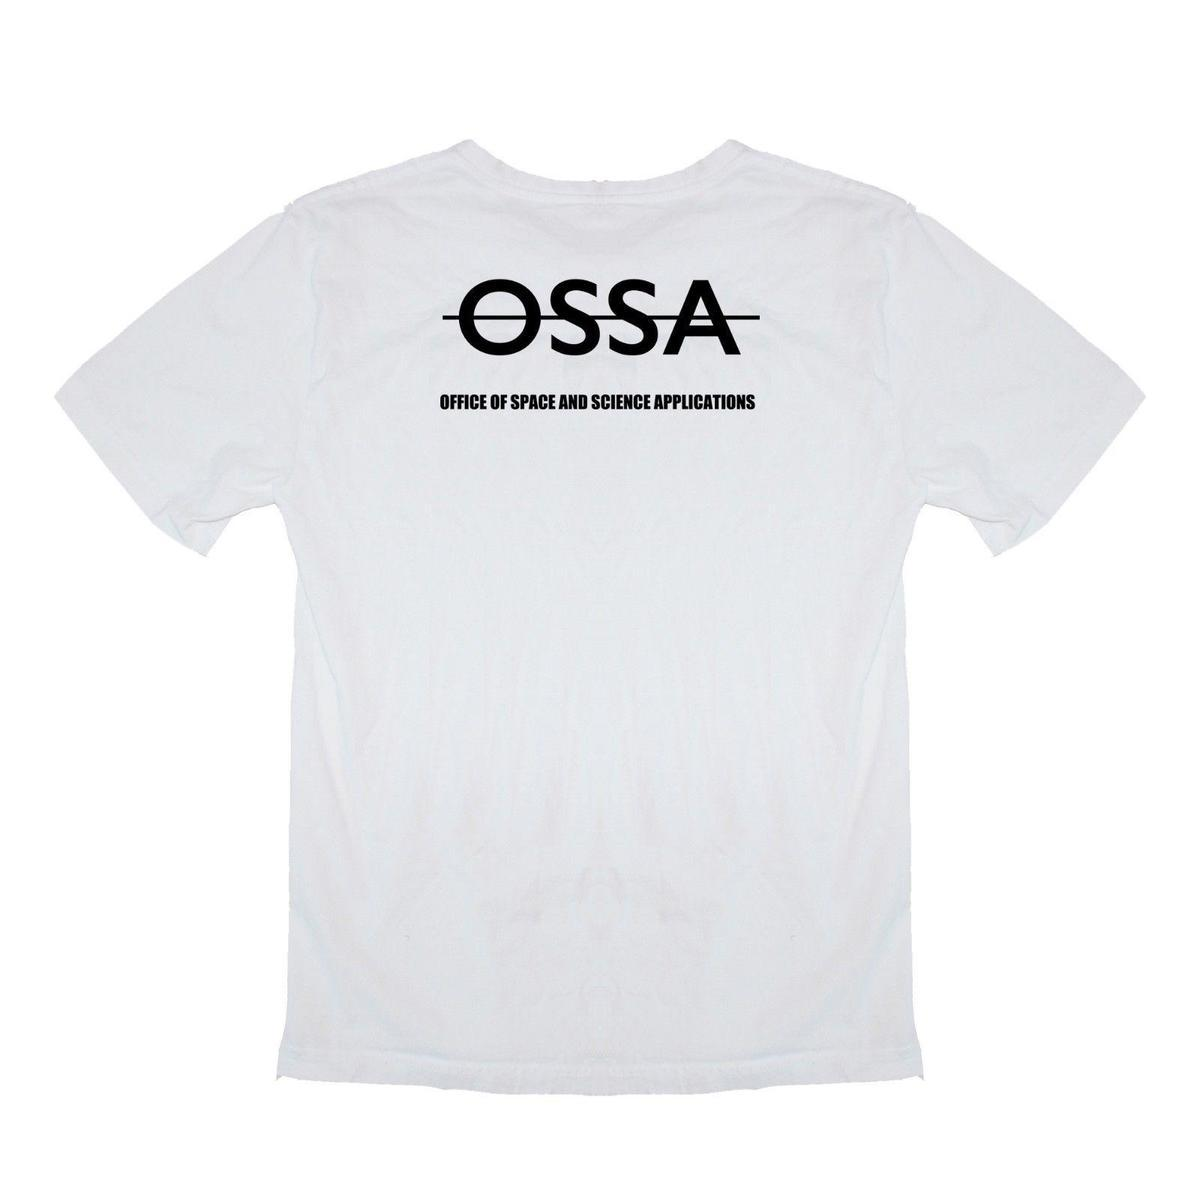 5995bcd3 OSSA Sphere Movie NASA Space Science SETI Navy Scifi Shirt S XXXL Many  Colours Funny Political T Shirts Tee Designs From Yuxin0008, $14.67|  DHgate.Com